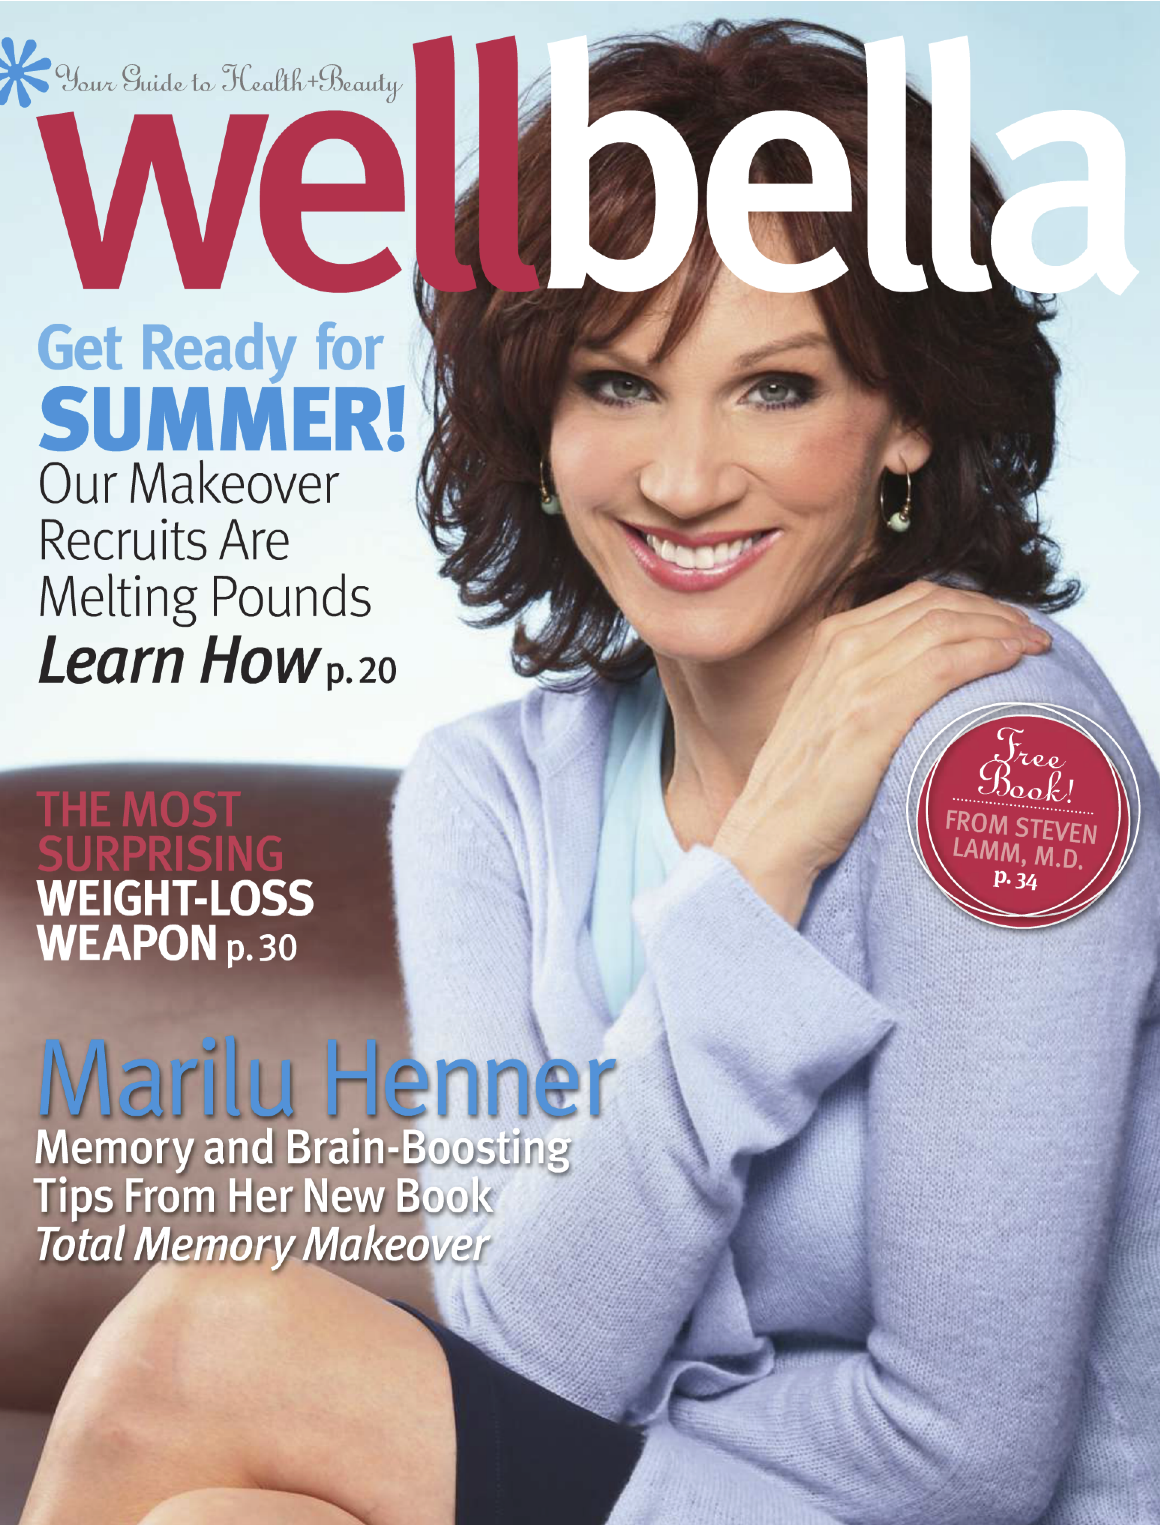 WELLBELLA • APRIL 2012